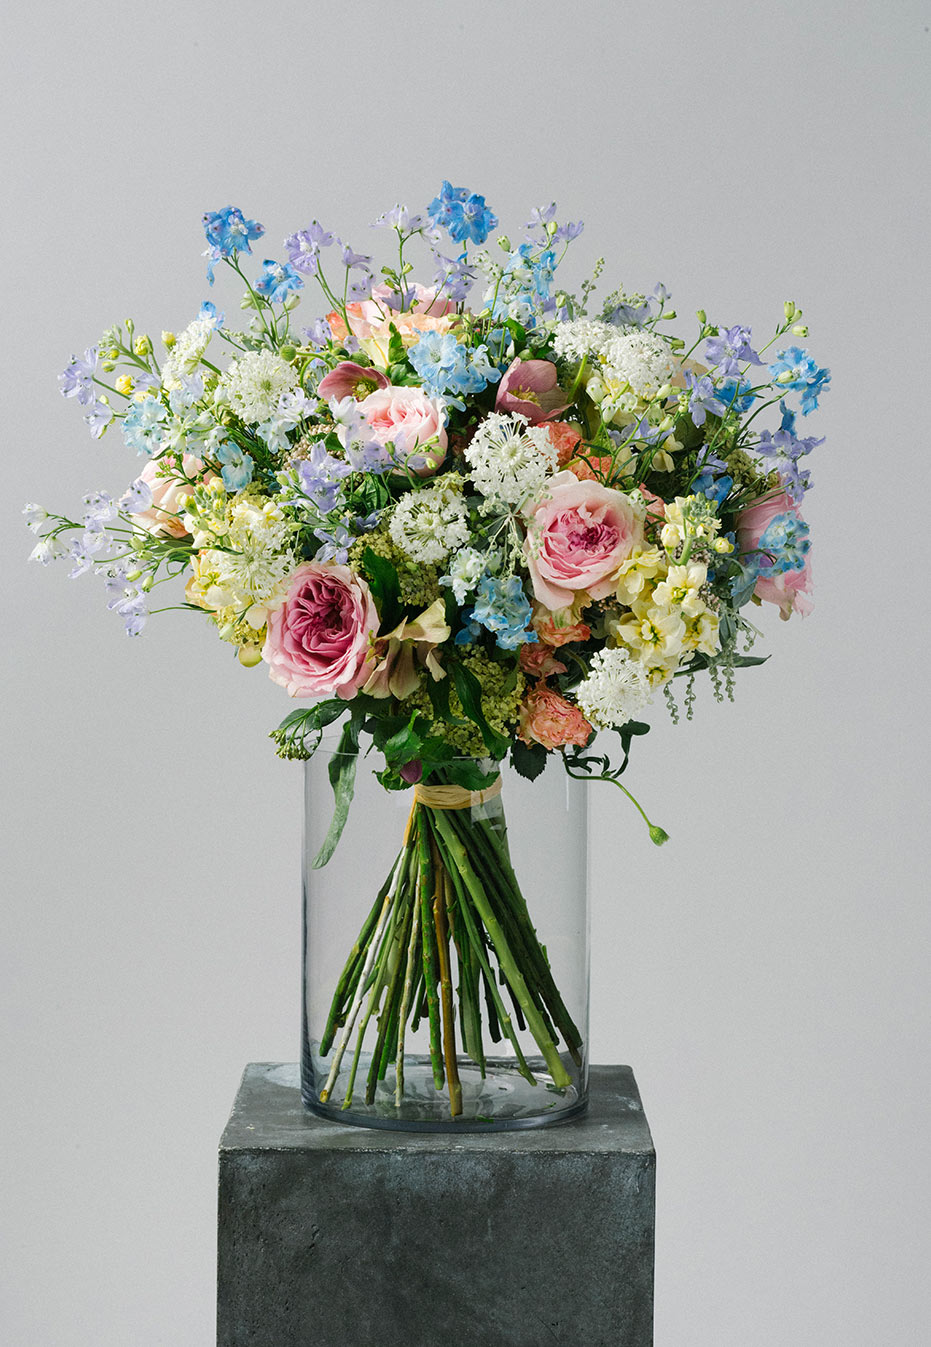 flower bouquet of garden rose and delphinium by flannel flowers